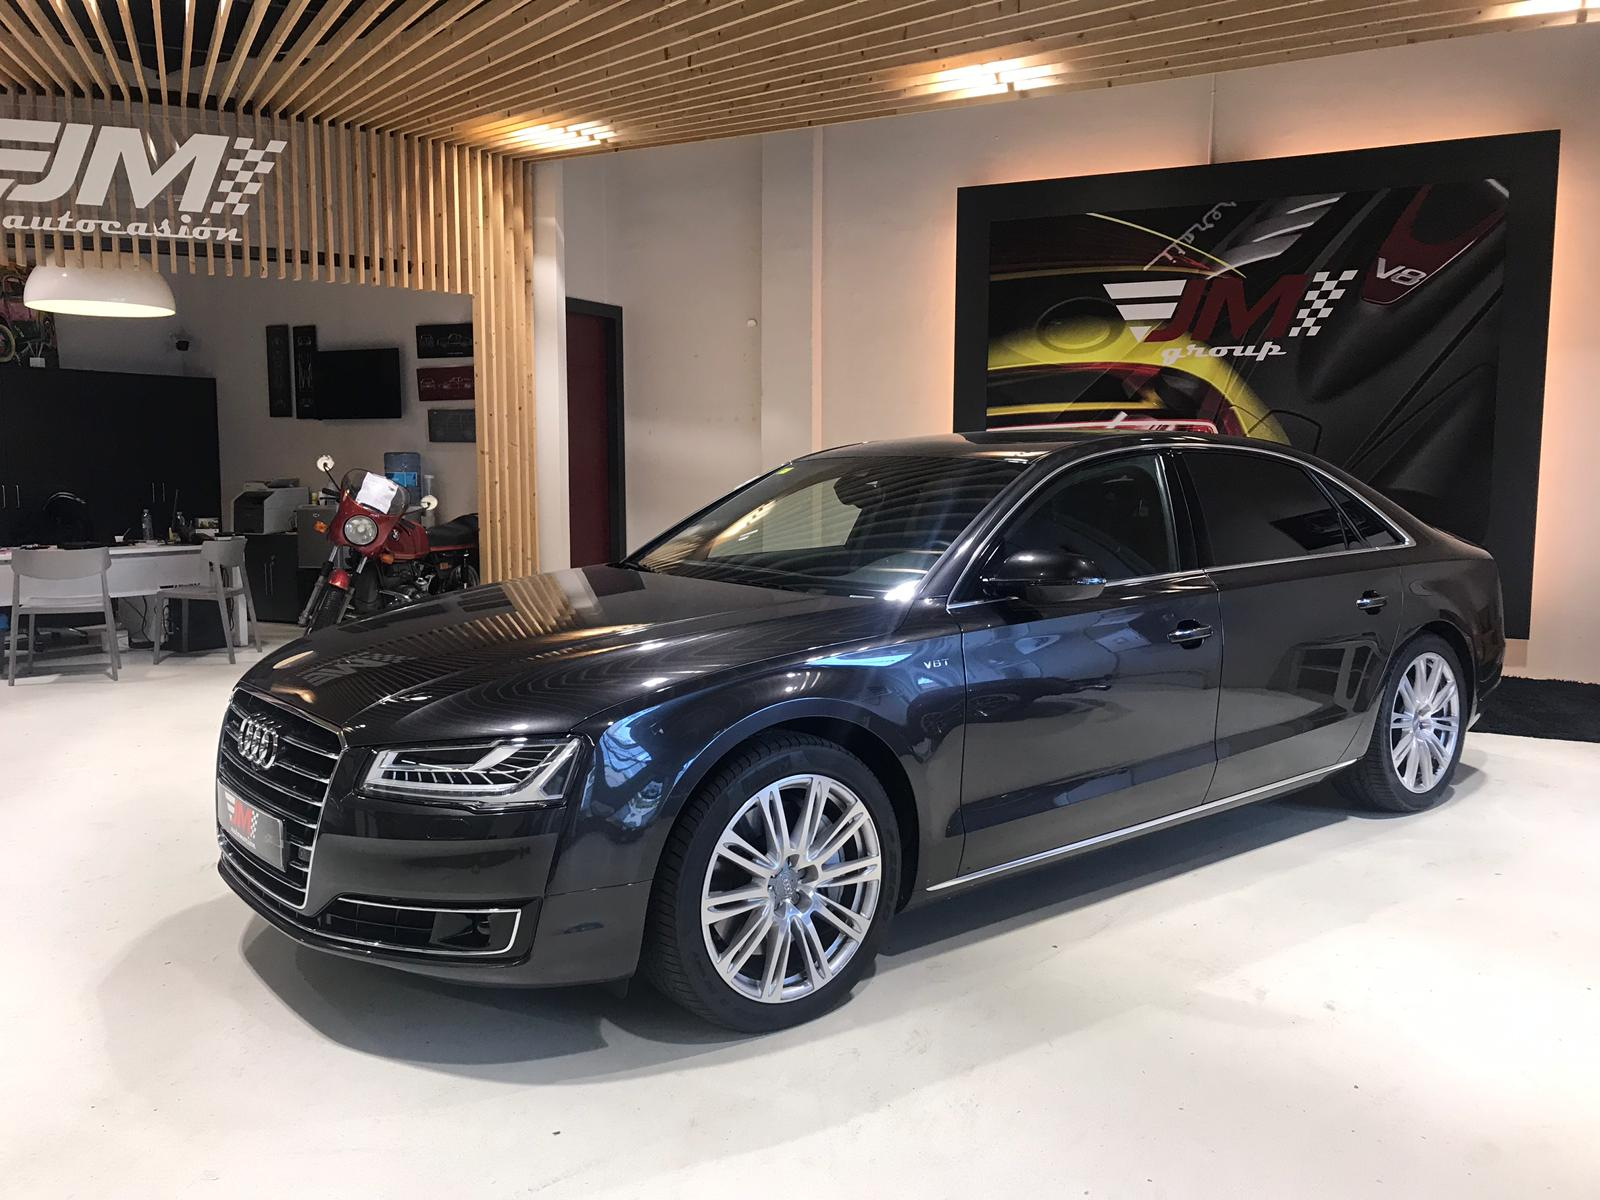 Audi A8 L 4.2TDI CD quattro Tiptronic--iva deducible